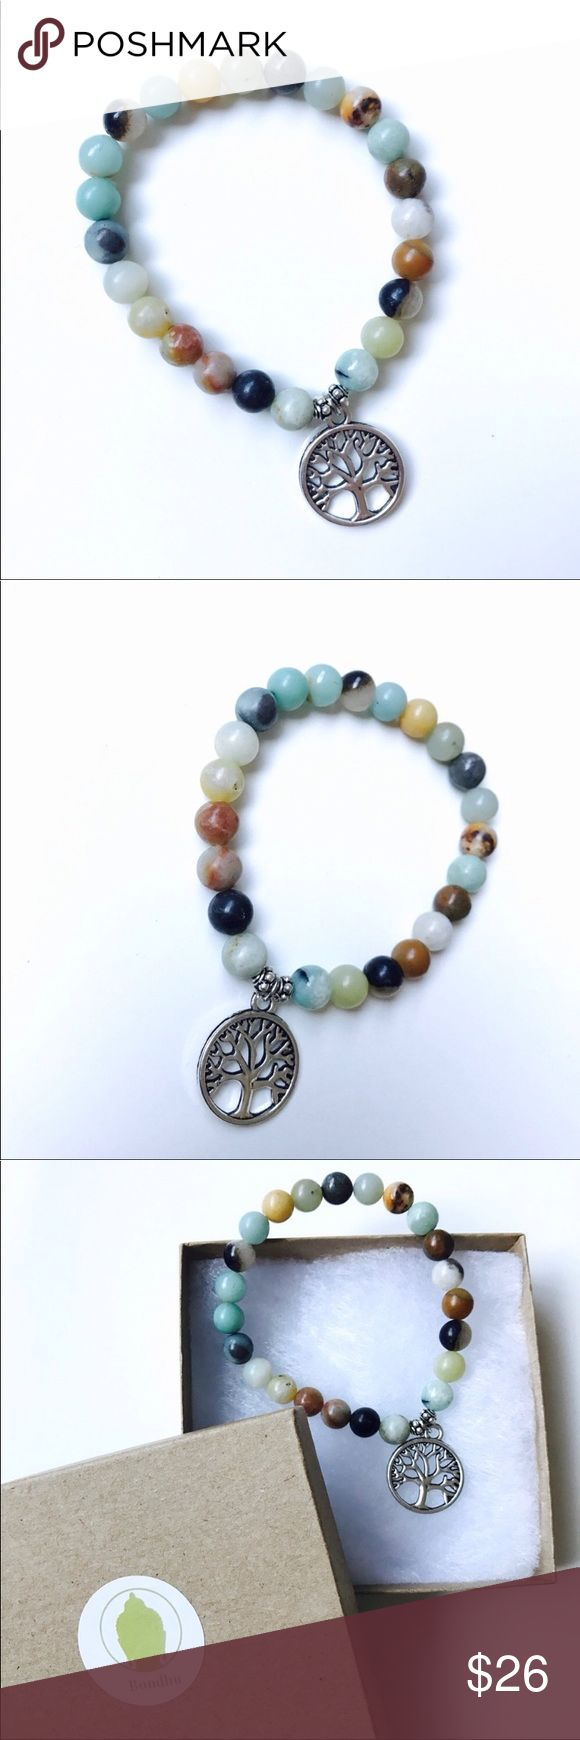 💥HP💥Tree of Life Amazonite Mala Bead Bracelet This beautiful bracelet is made of Amazonite beads which is luck, and has a Tree of Life charm.Tree of Life represents unlimited growth and sacred knowledge.We are all connected parts of the universe.Fair trade, made in India.Comes in a eco-friendly box and jewelry pouch, ready for gift-giving! Bondhu Jewelry Bracelets